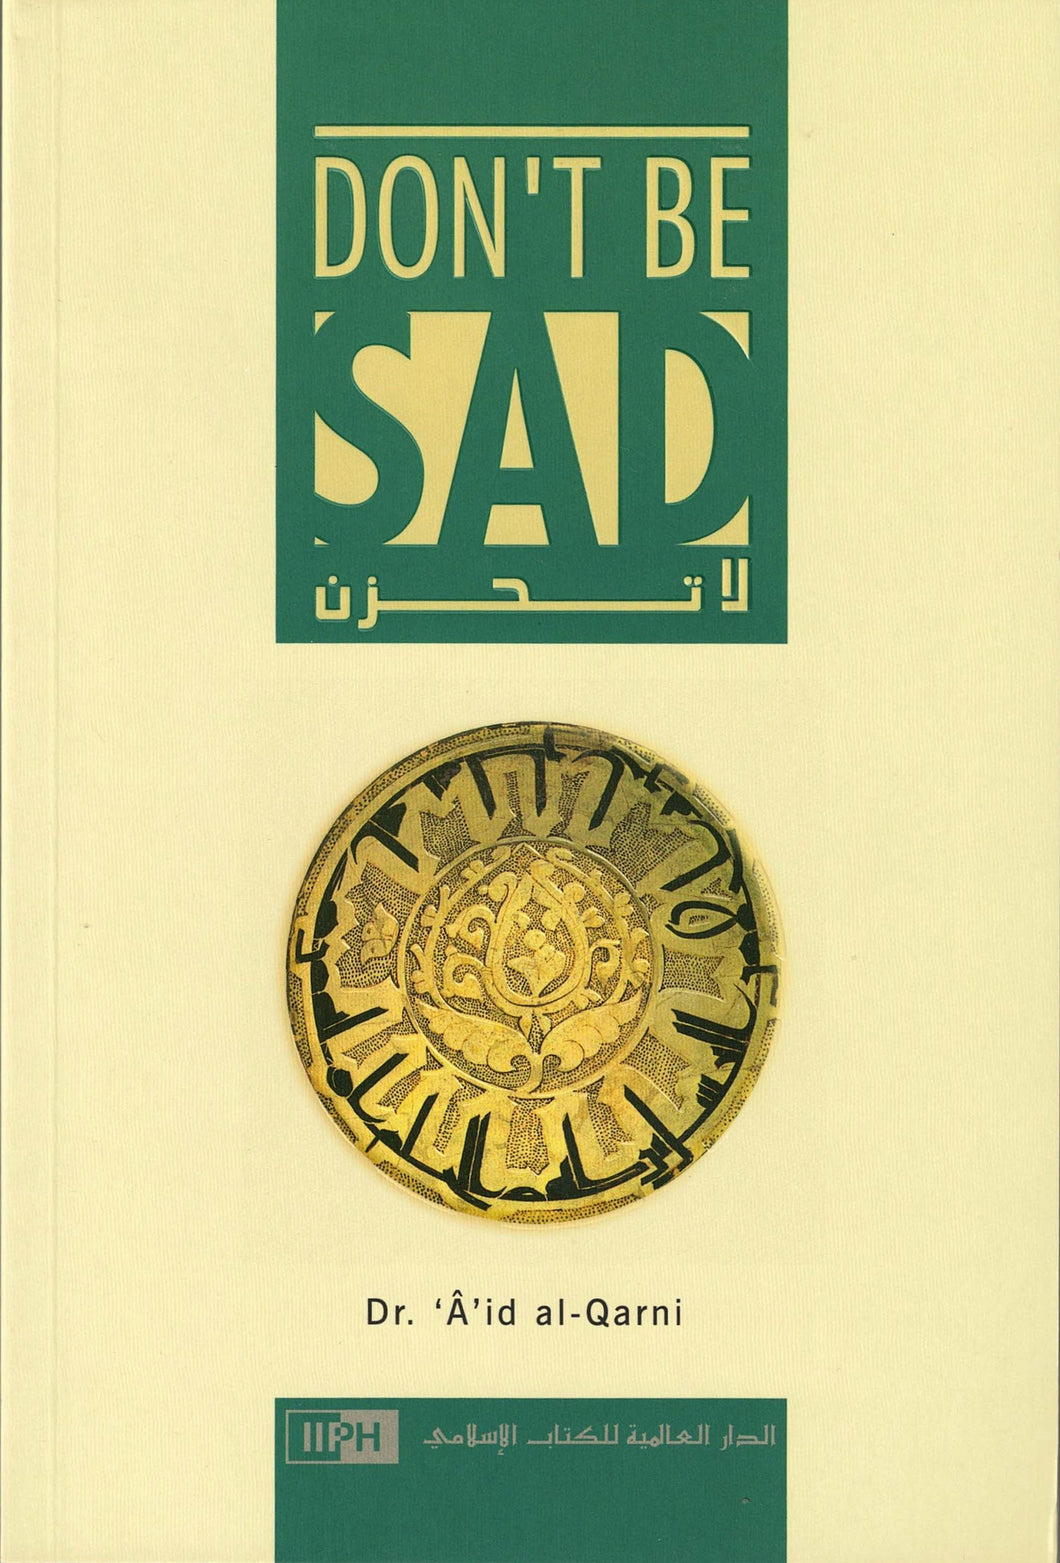 Don't Be Sad - Dr. 'Aid al-Qarni